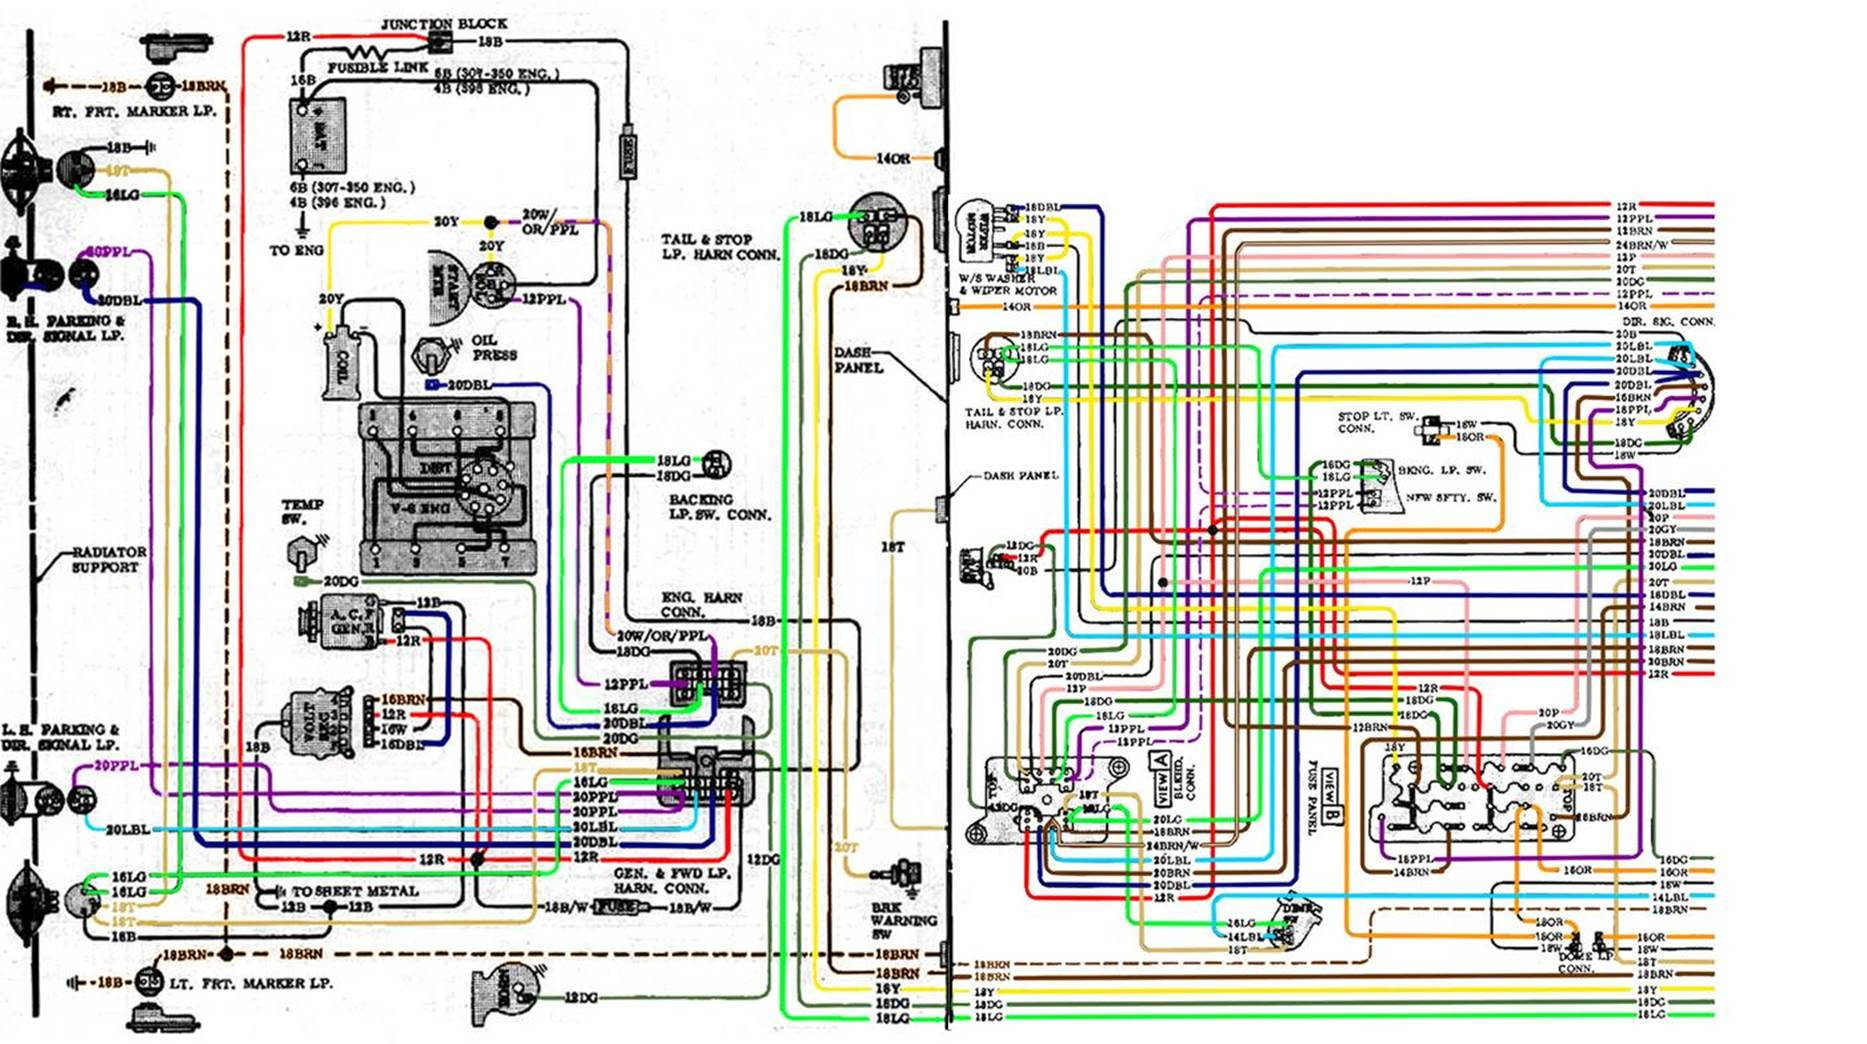 image002 67 72 chevy wiring diagram wiring harness for 1968 chevy c10 at panicattacktreatment.co